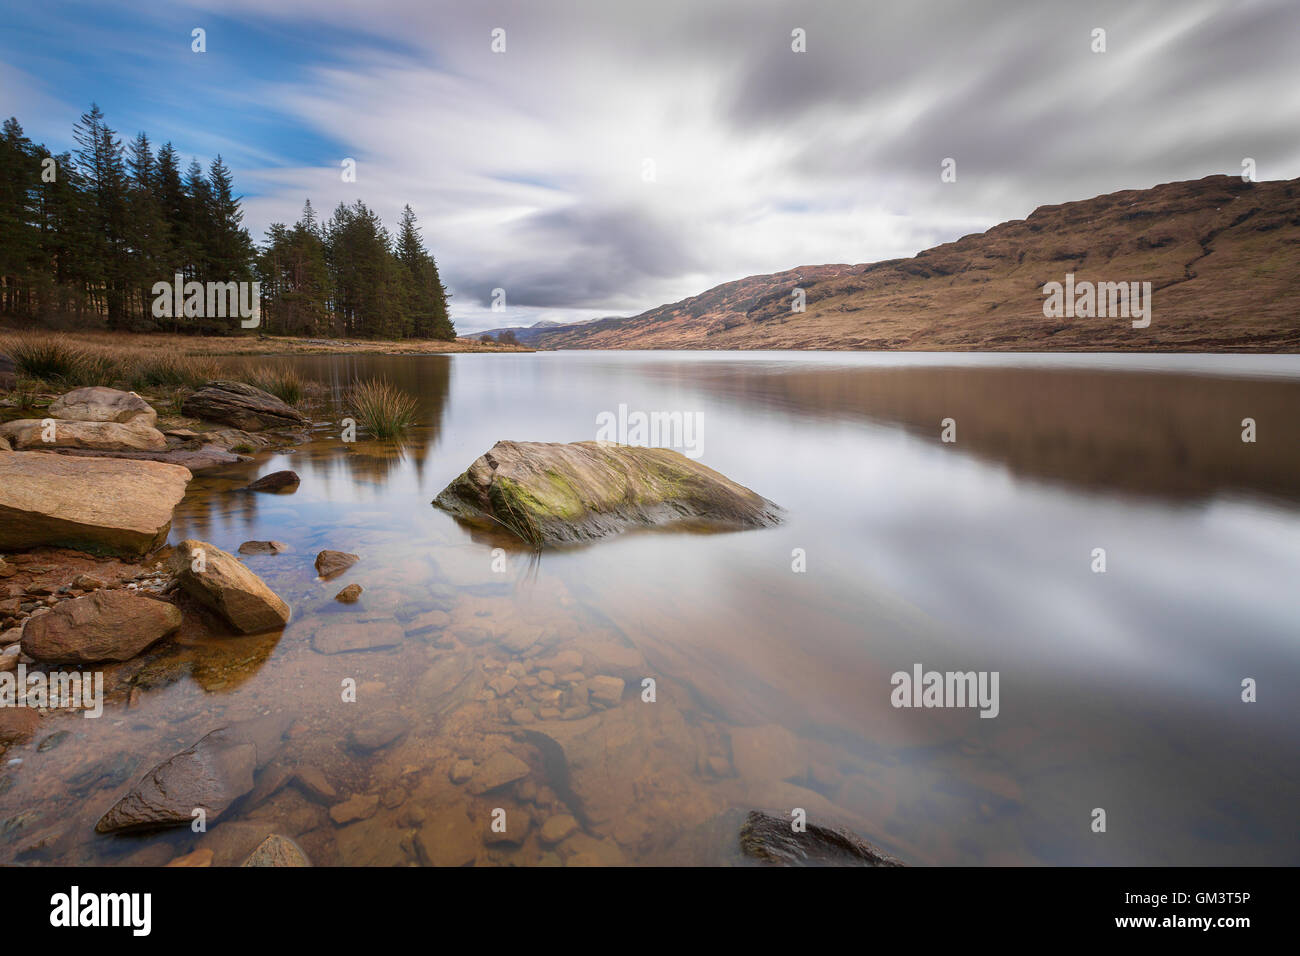 Loch Arklet on a breezy day. - Stock Image